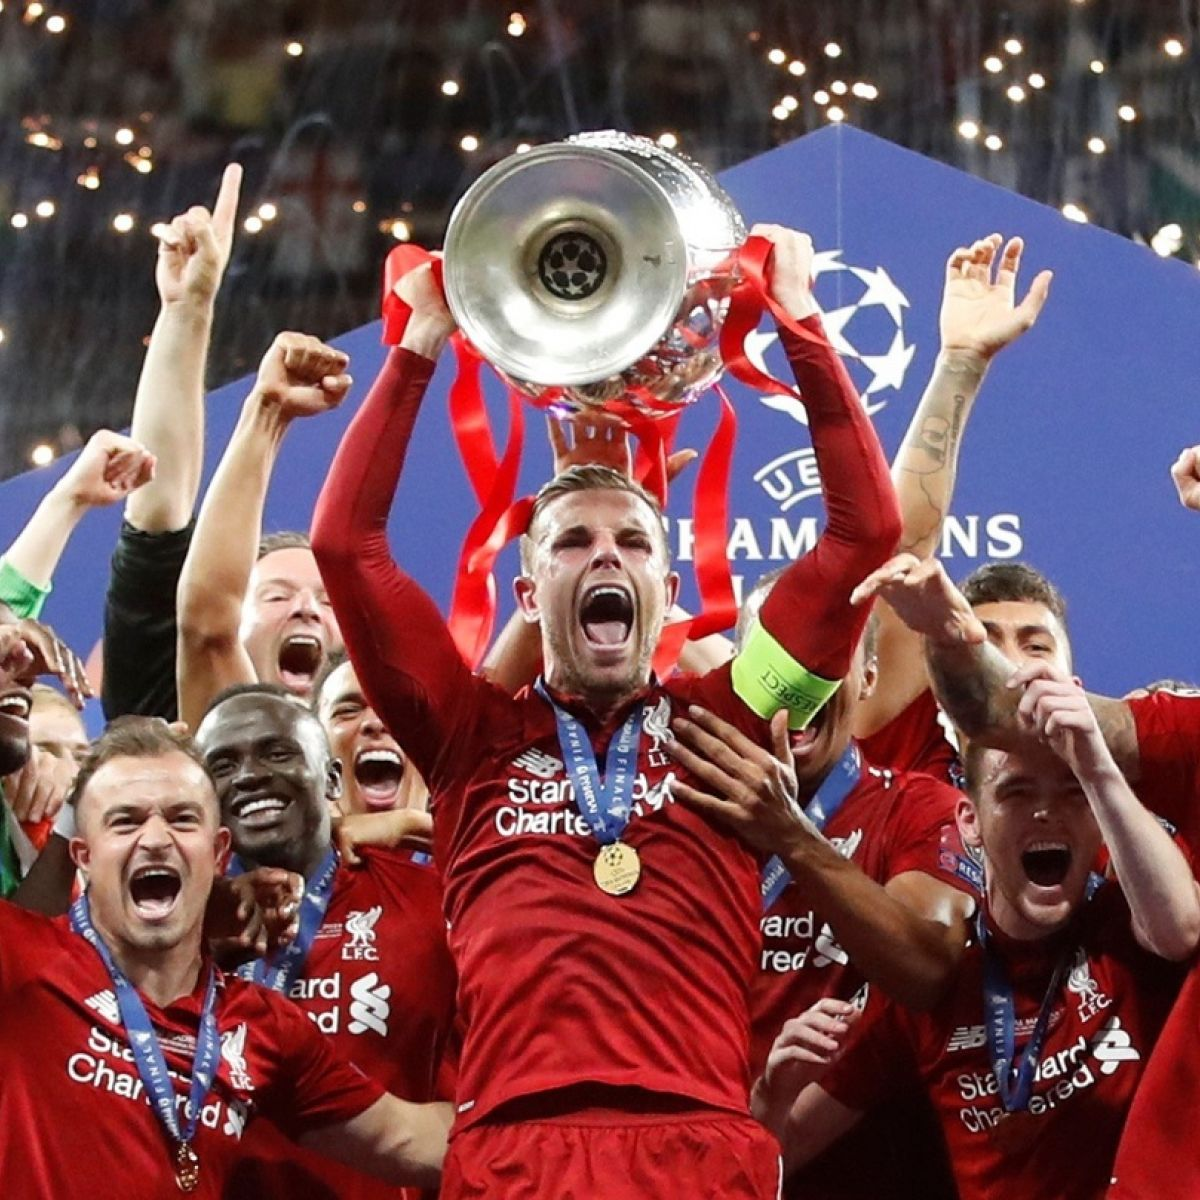 Champions League victory to push Liverpool broadcast income to £250m